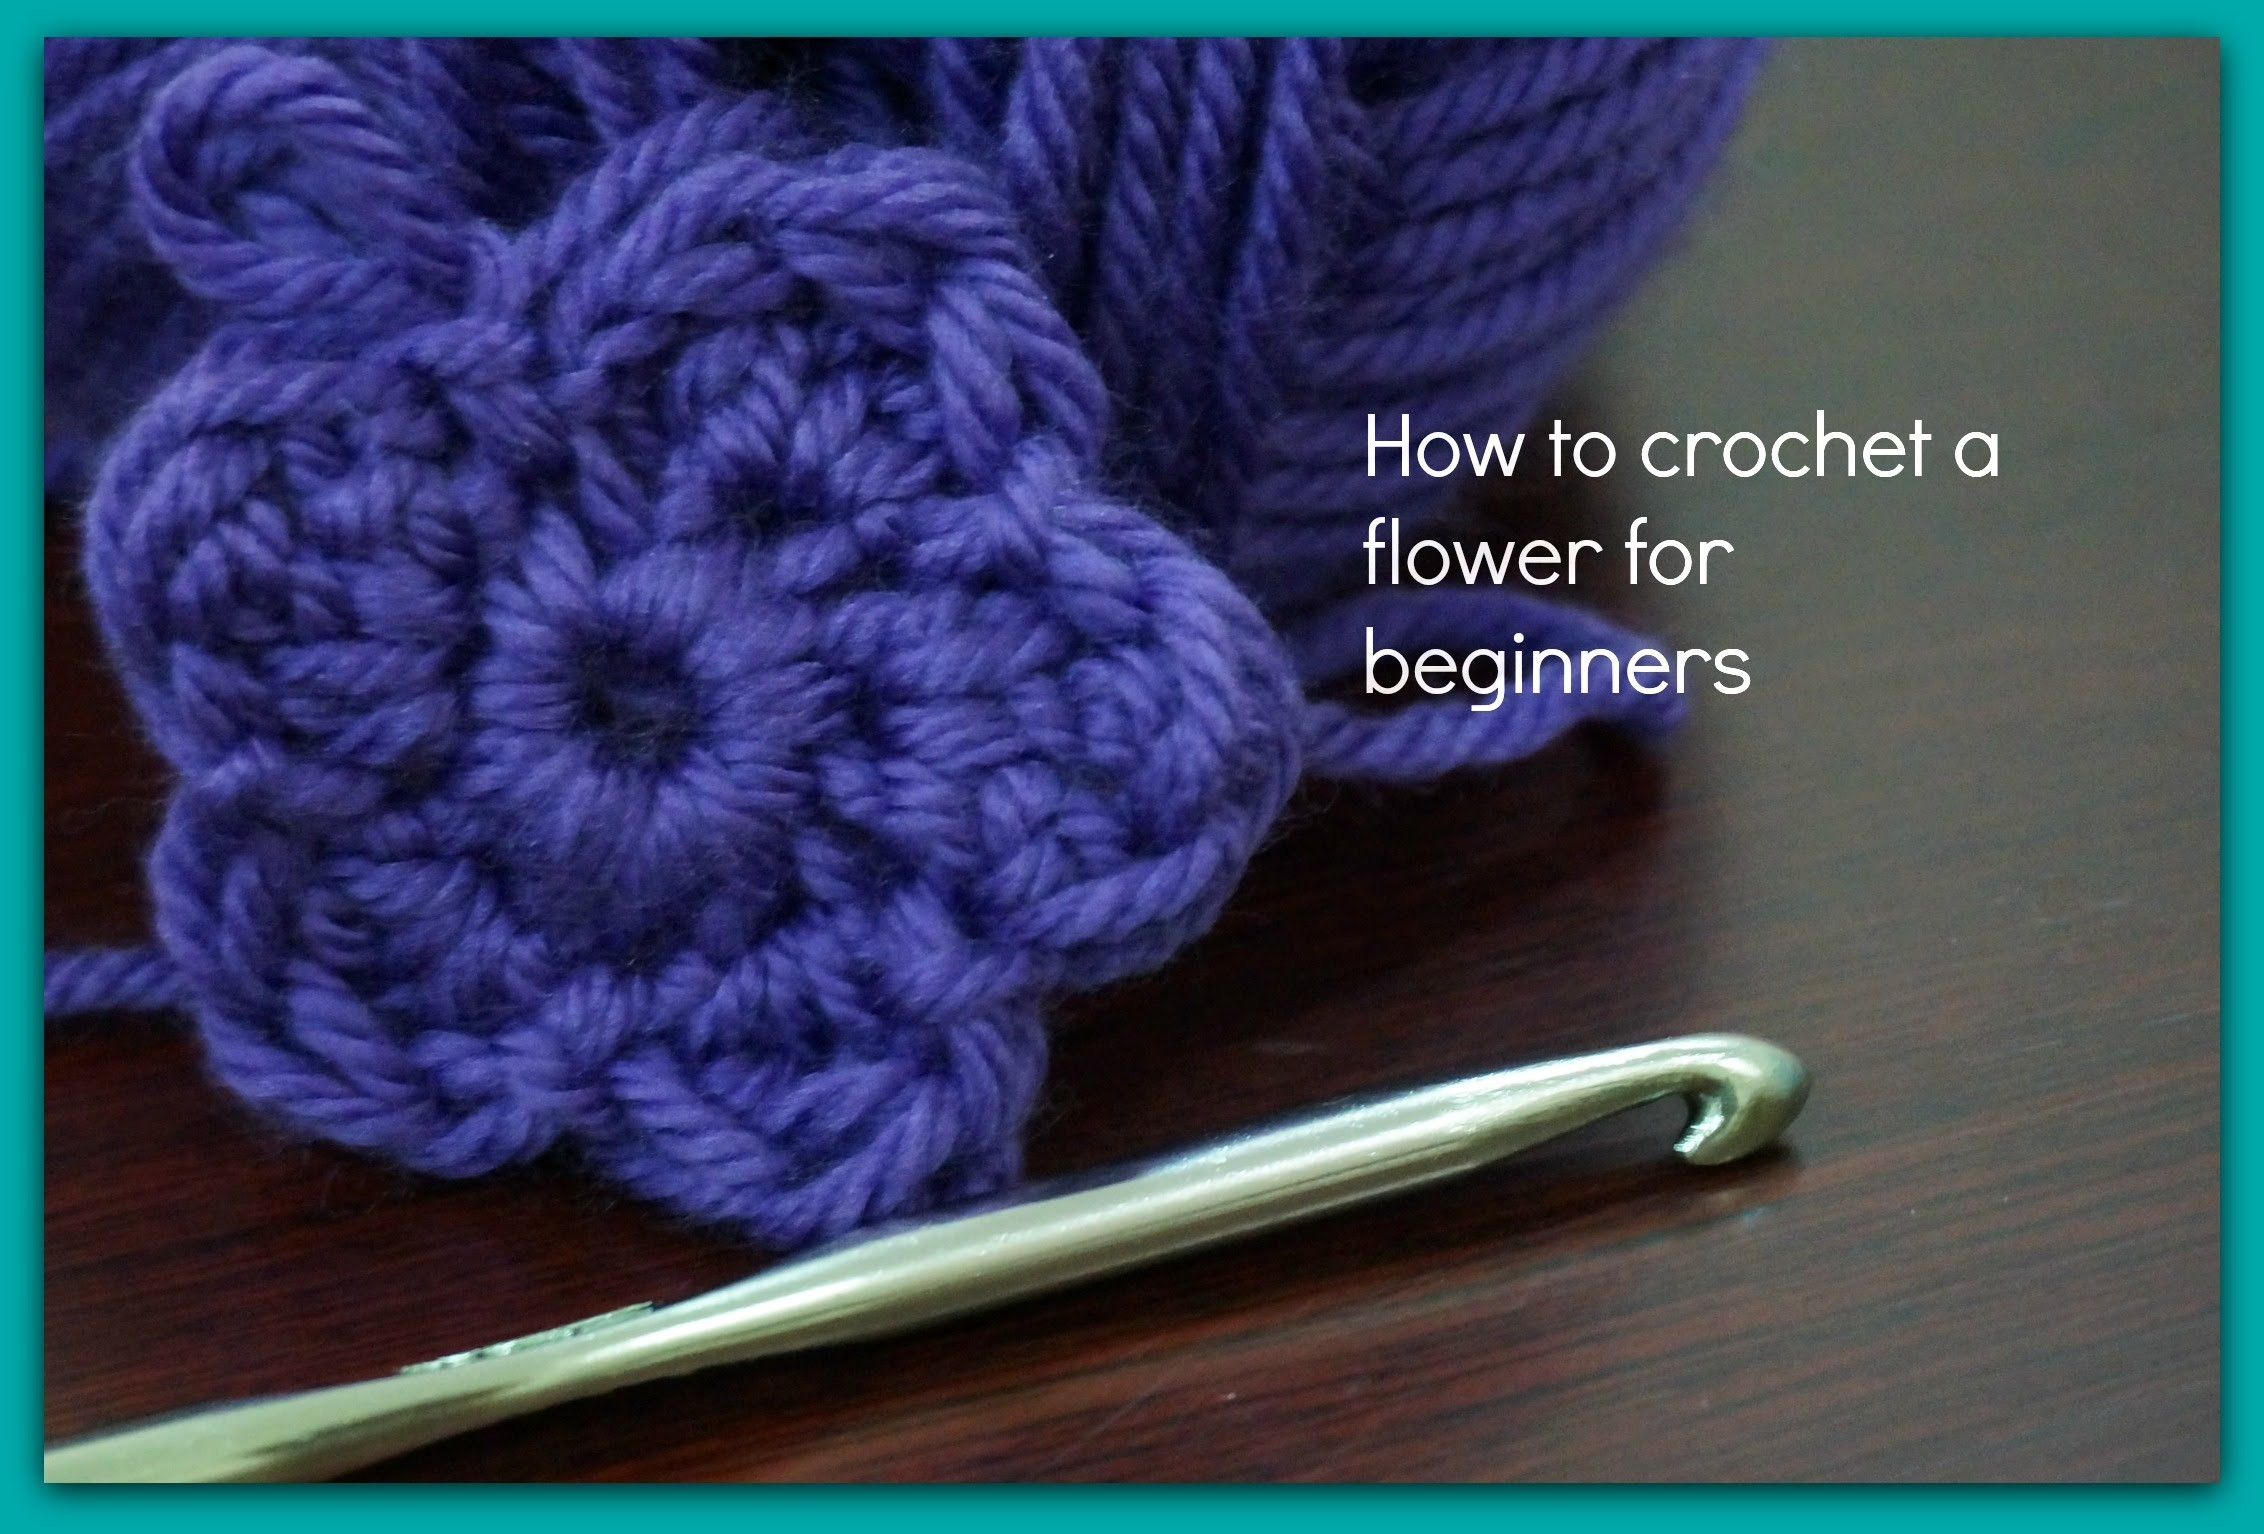 How to crochet a flower for beginners, My Crafts and DIY Projects